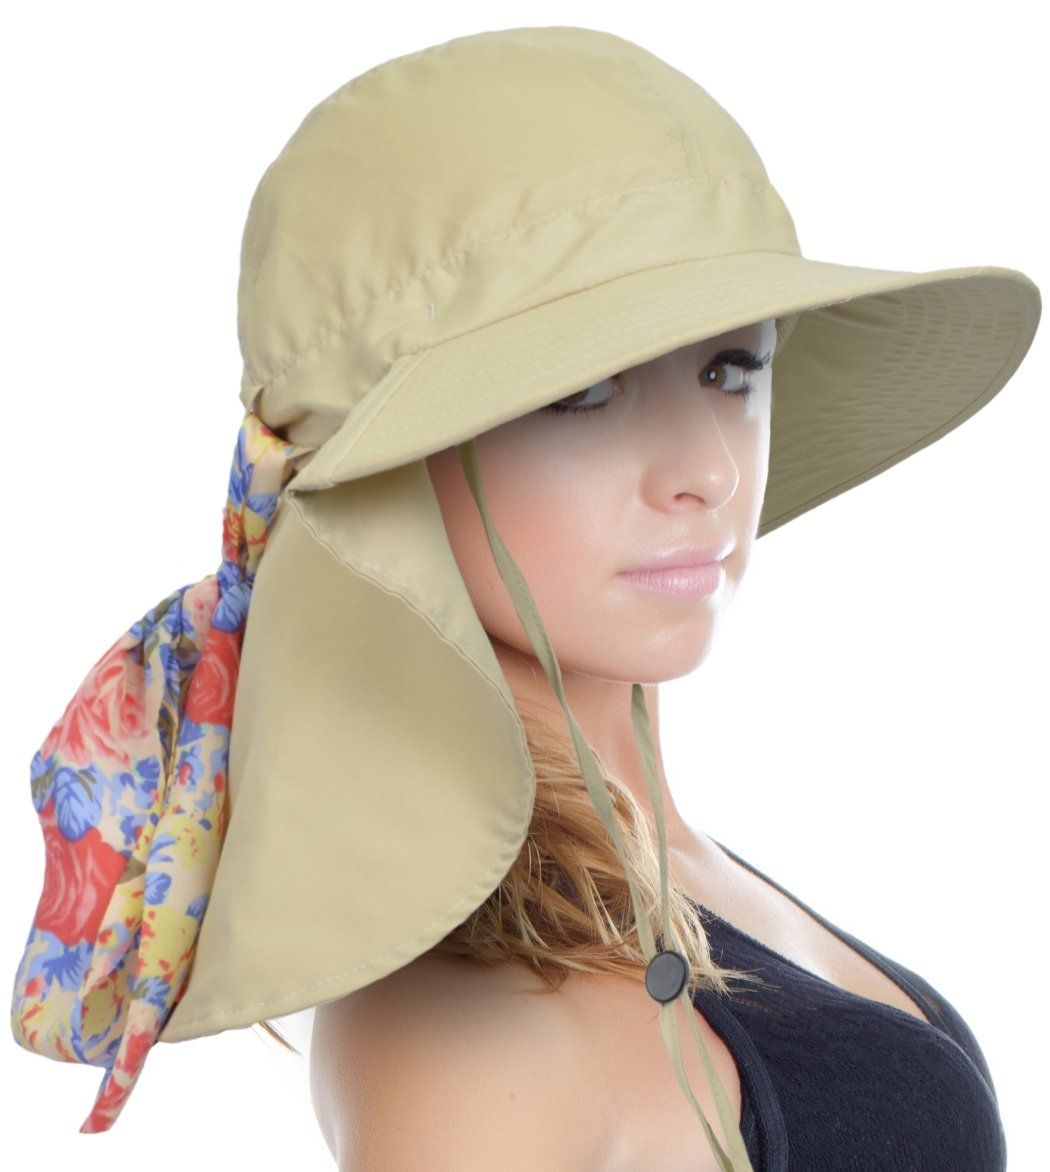 KEKLLE Women's Safari Sun Hat with Neck Flap Large Brim Packable Summer Beach Fishing Cap